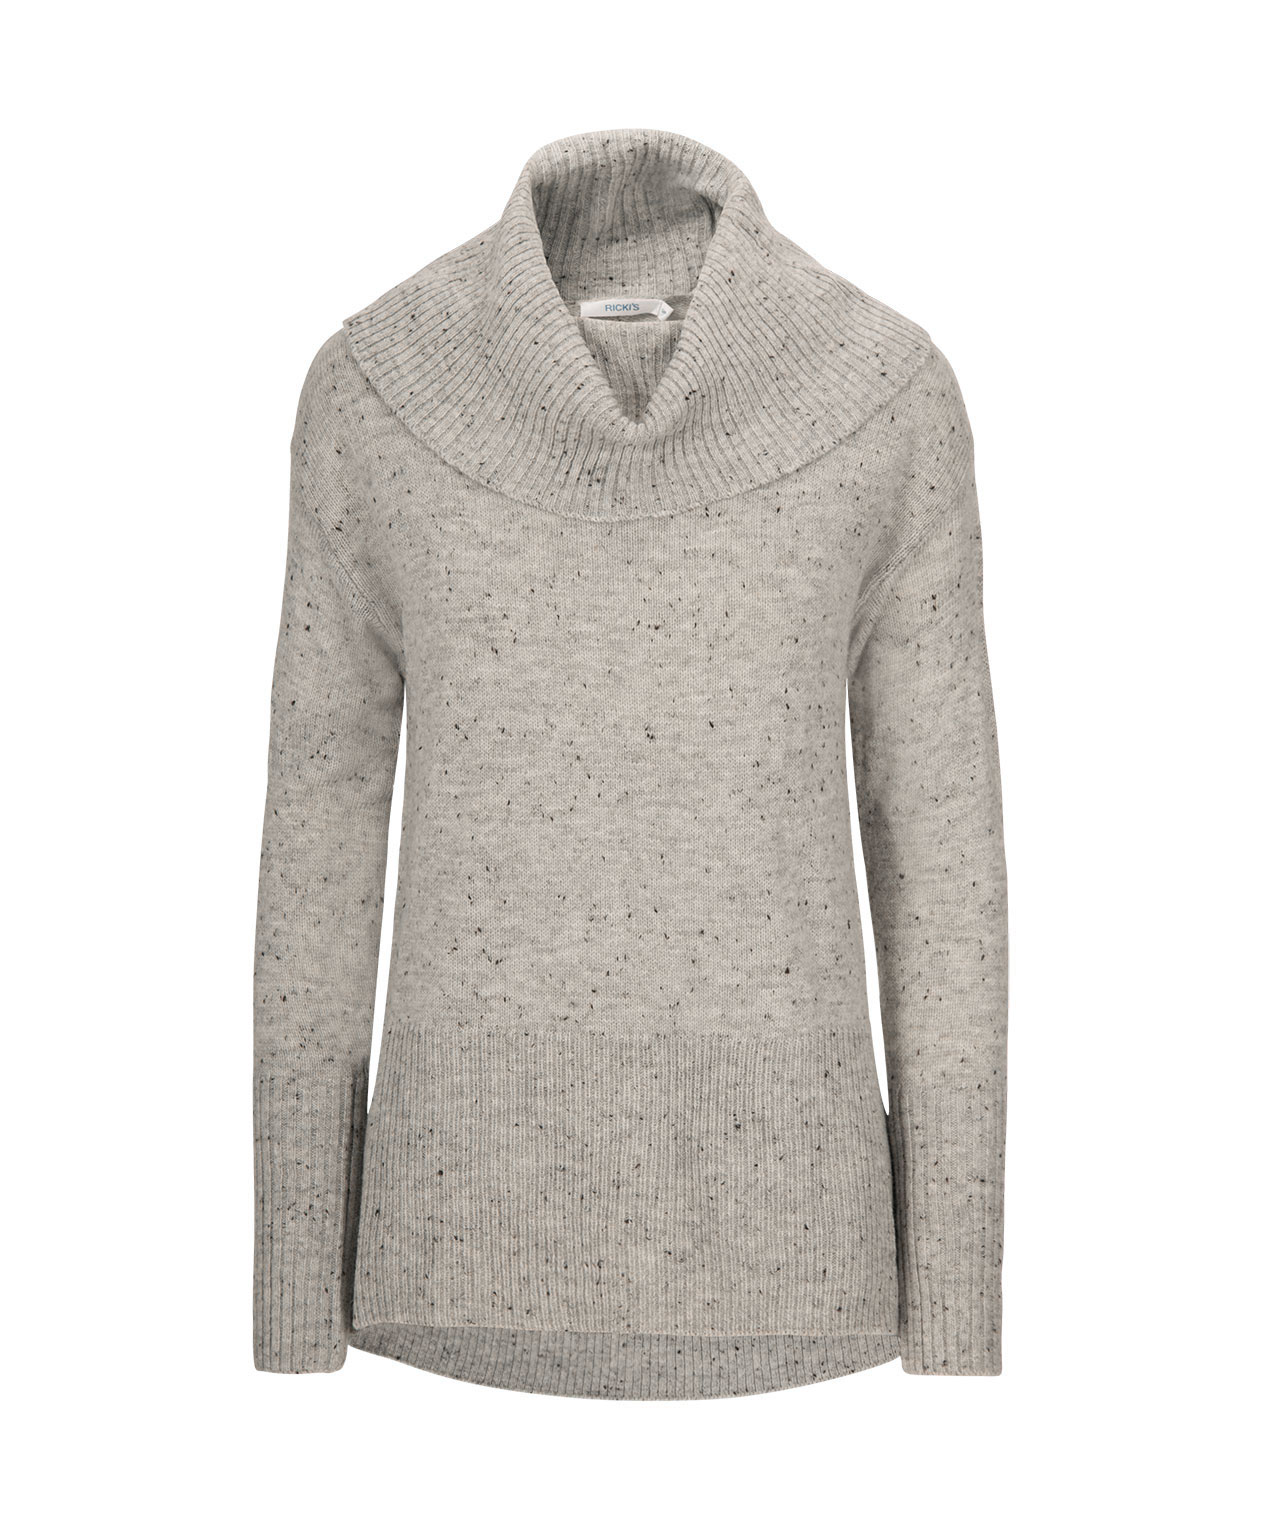 f02c337865b Ribbed Cowl Neck Pullover Sweater